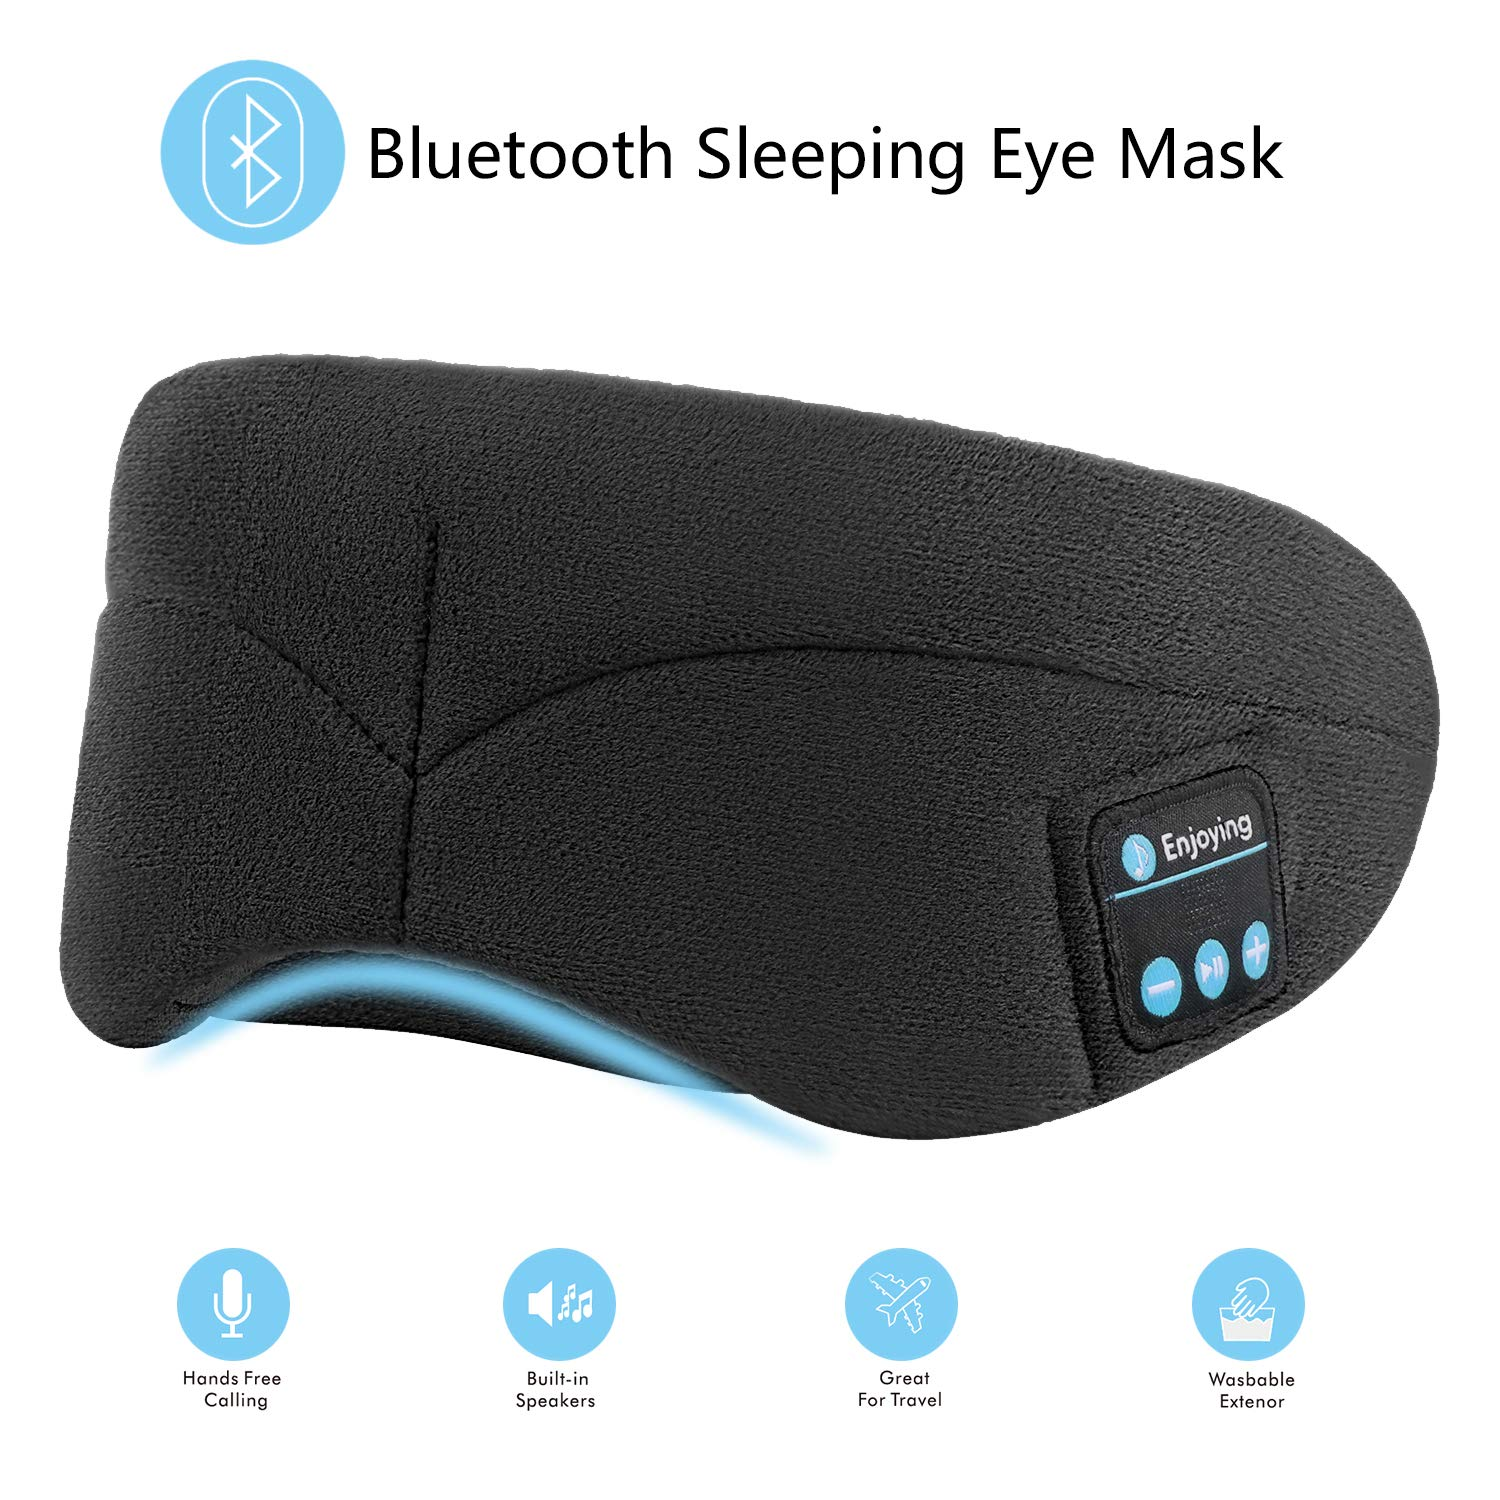 Bluetooth Sleeping Eye Mask with Wireless Headphones,ERNSTING Wireless Bluetooth Music Headset with Adjustable Built-in Speaker and Microphone Calls Washable Perfect for Travel and Sleep (Black)